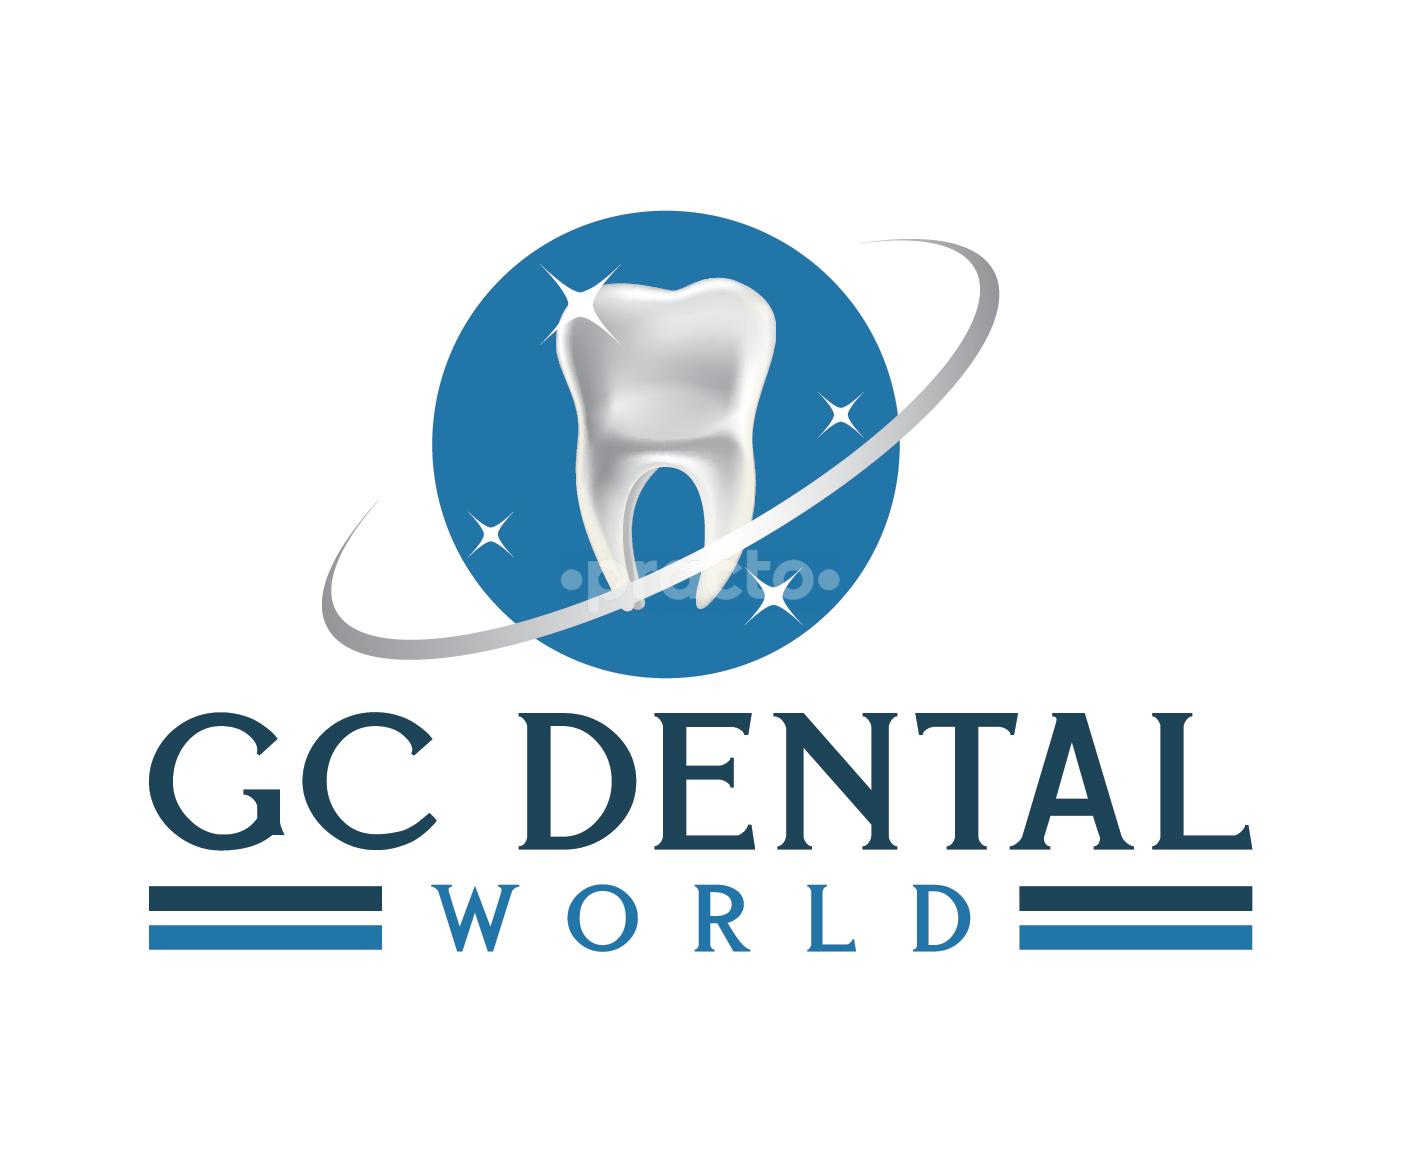 GC Dental World